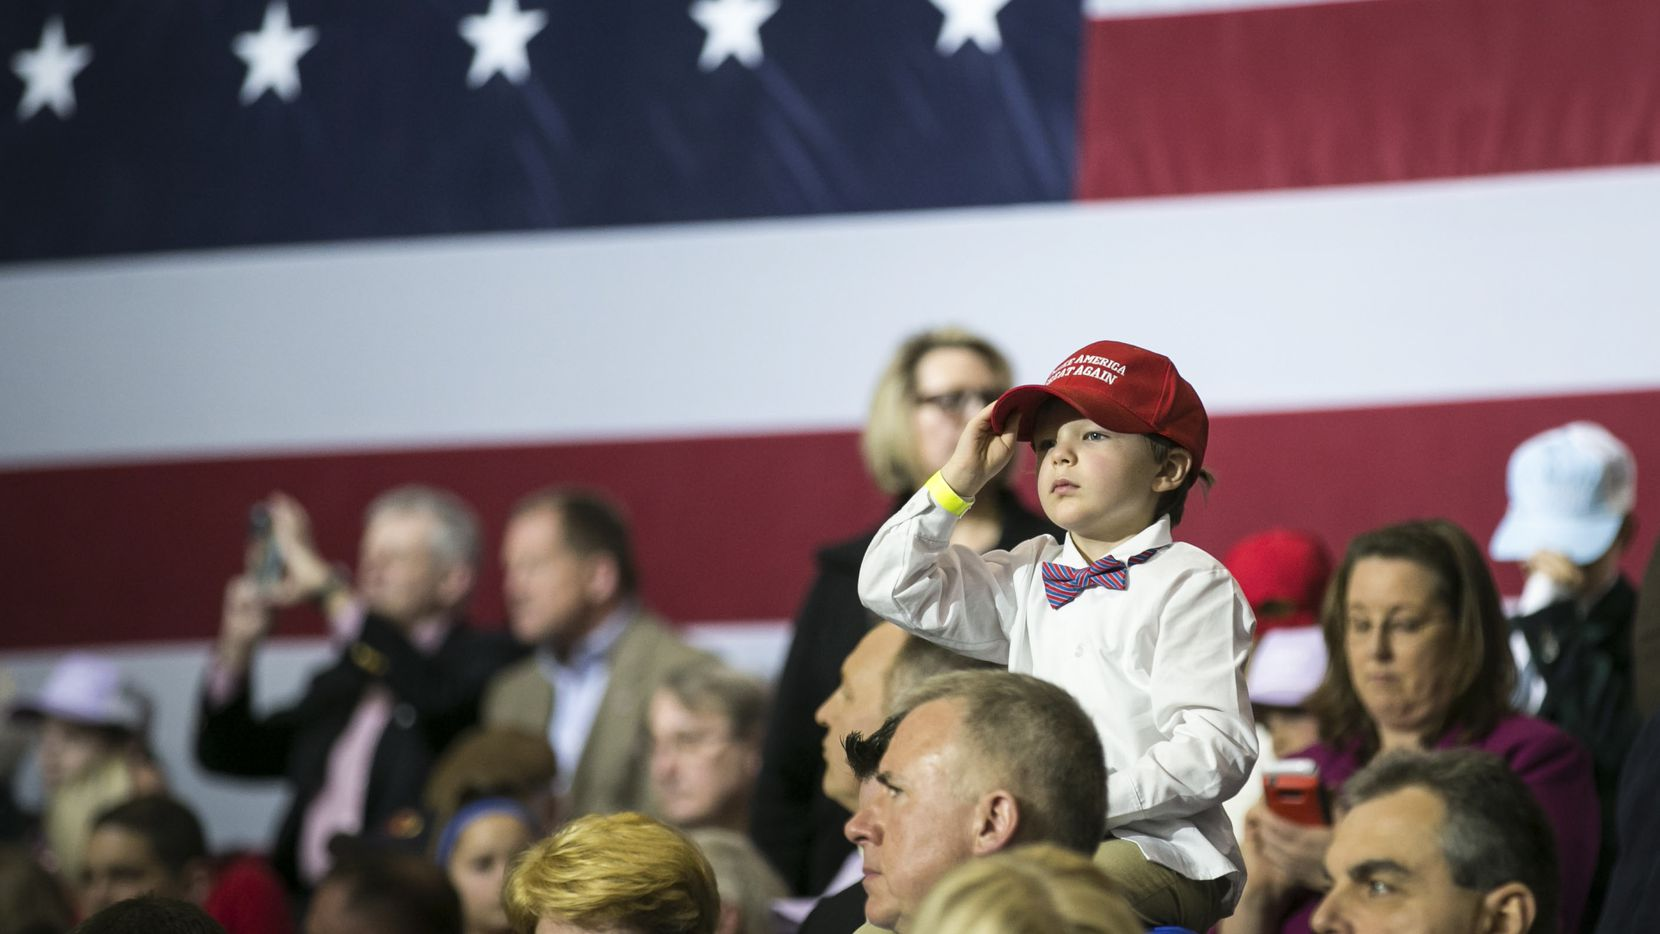 "A child wearing a Make America Great Again hat in a crowd waiting to hear President Donald Trump speak at a campaign-style rally at the Kentucky Exposition Center in Louisville, March 20, 2017. Trump delivered a rollicking populist and nationalist appeal on Monday, promising to renegotiate trade agreements, clamp down on illegal immigration, keep terrorists out of the country – all in the service of putting ""America First."" (Al Drago/The New York Times)"